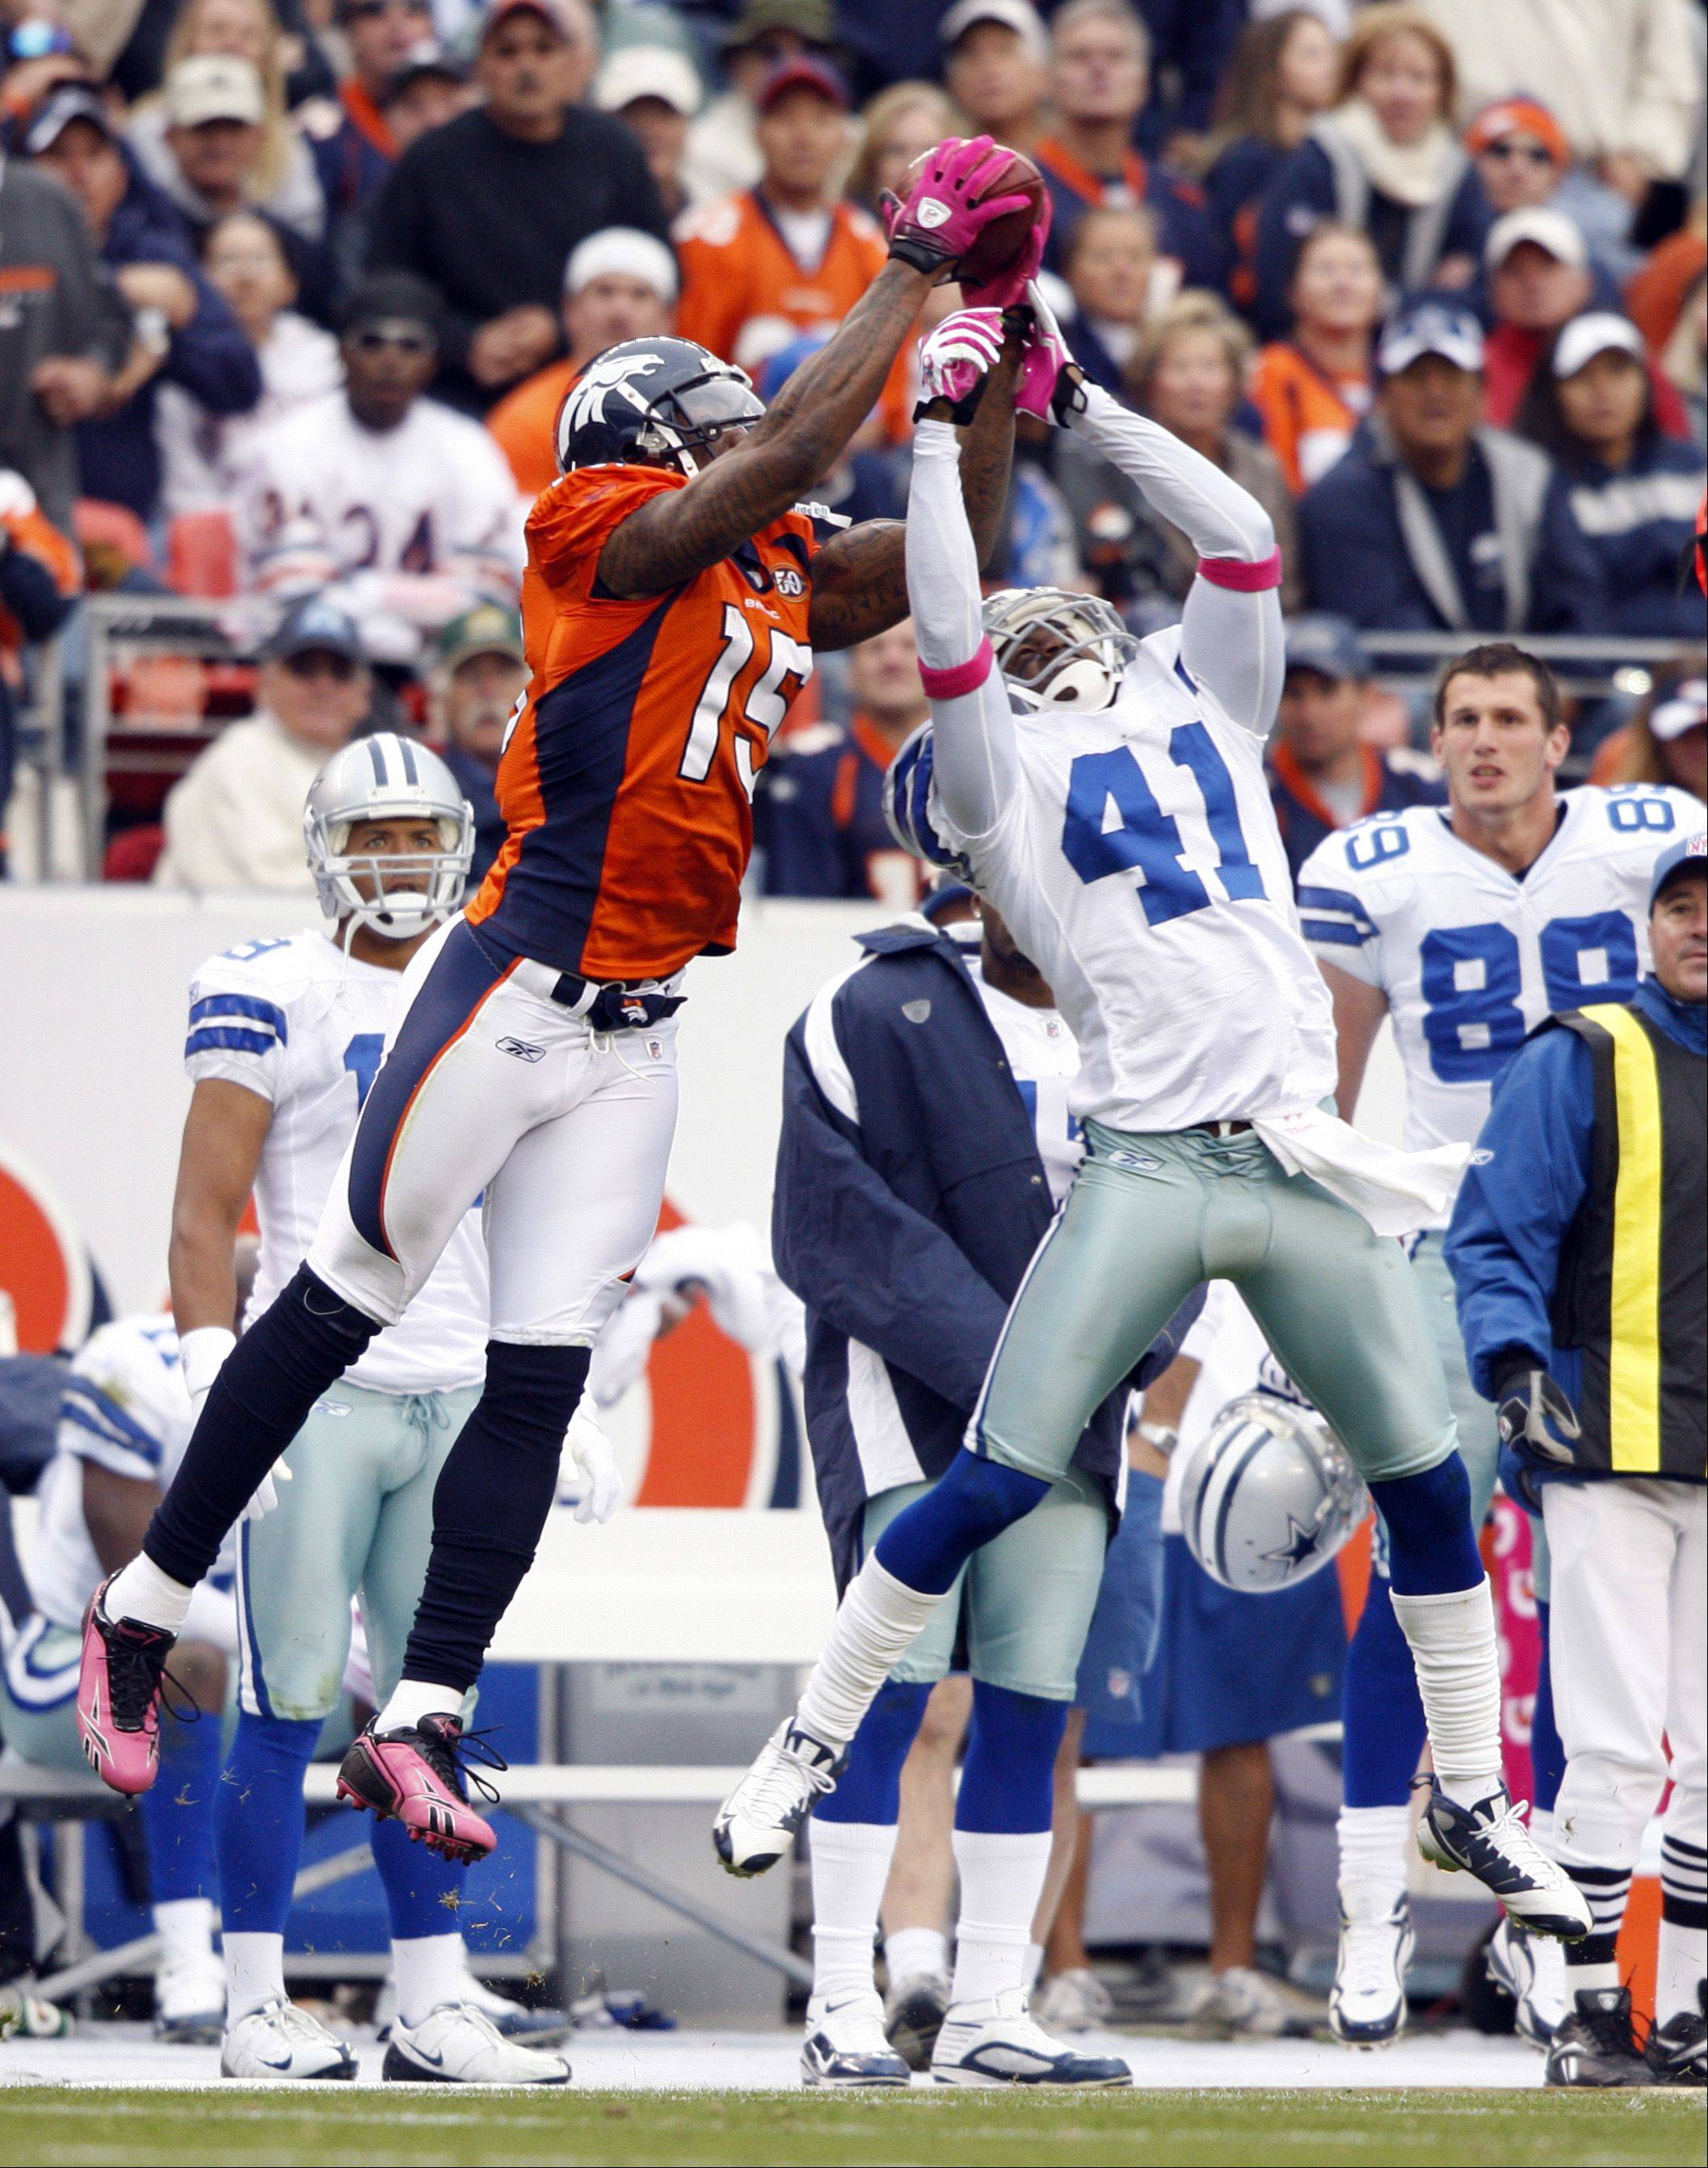 Denver Broncos wide receiver Brandon Marshall (15) catches a pass against Dallas Cowboys cornerback Terence Newman (41) for the game-winning touchdown during the fourth quarter of an NFL football game Sunday, Oct. 4, 2009, in Denver.